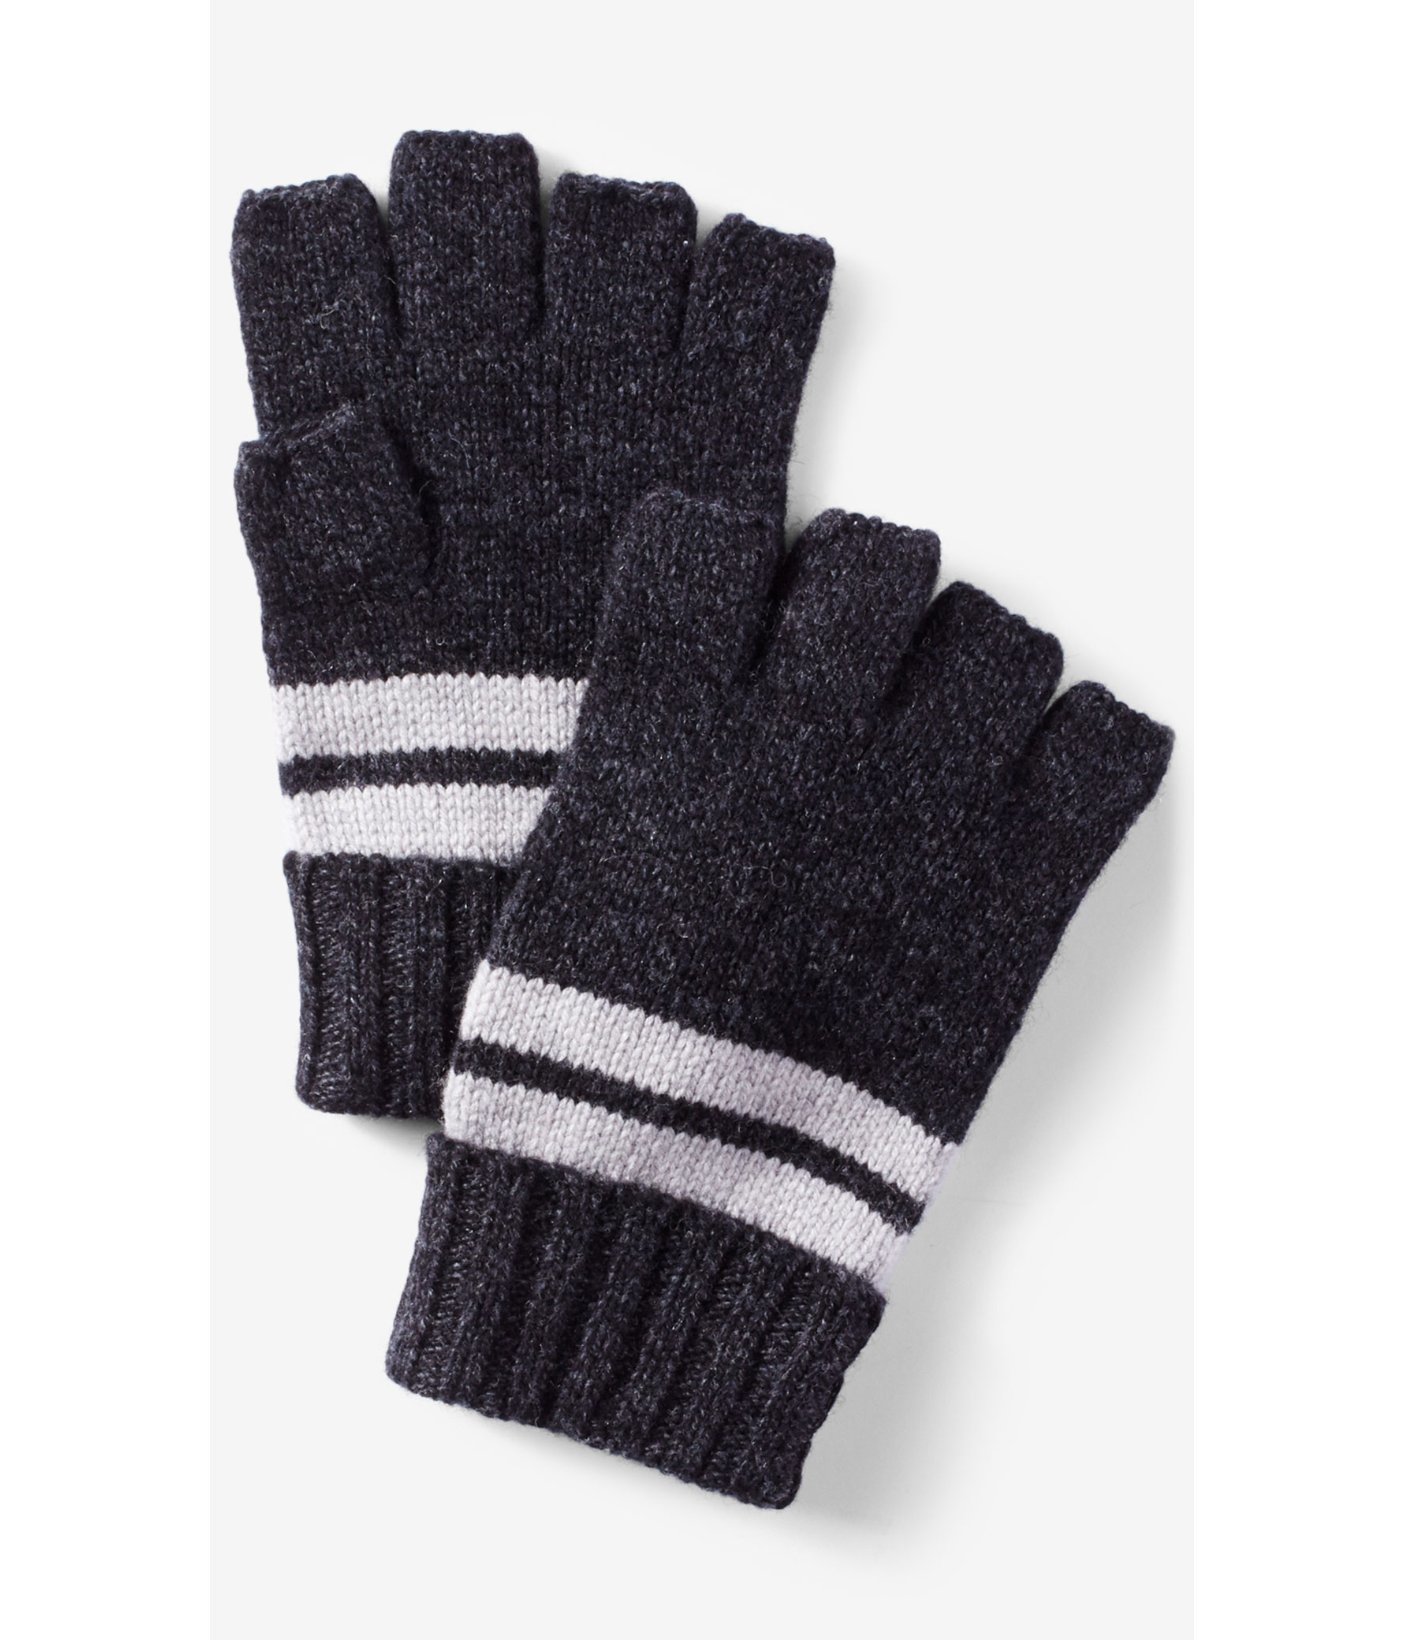 Mens gloves with mitten flap -  Express Striped Convertible Cuff Fingerless Gloves In Gray For Men